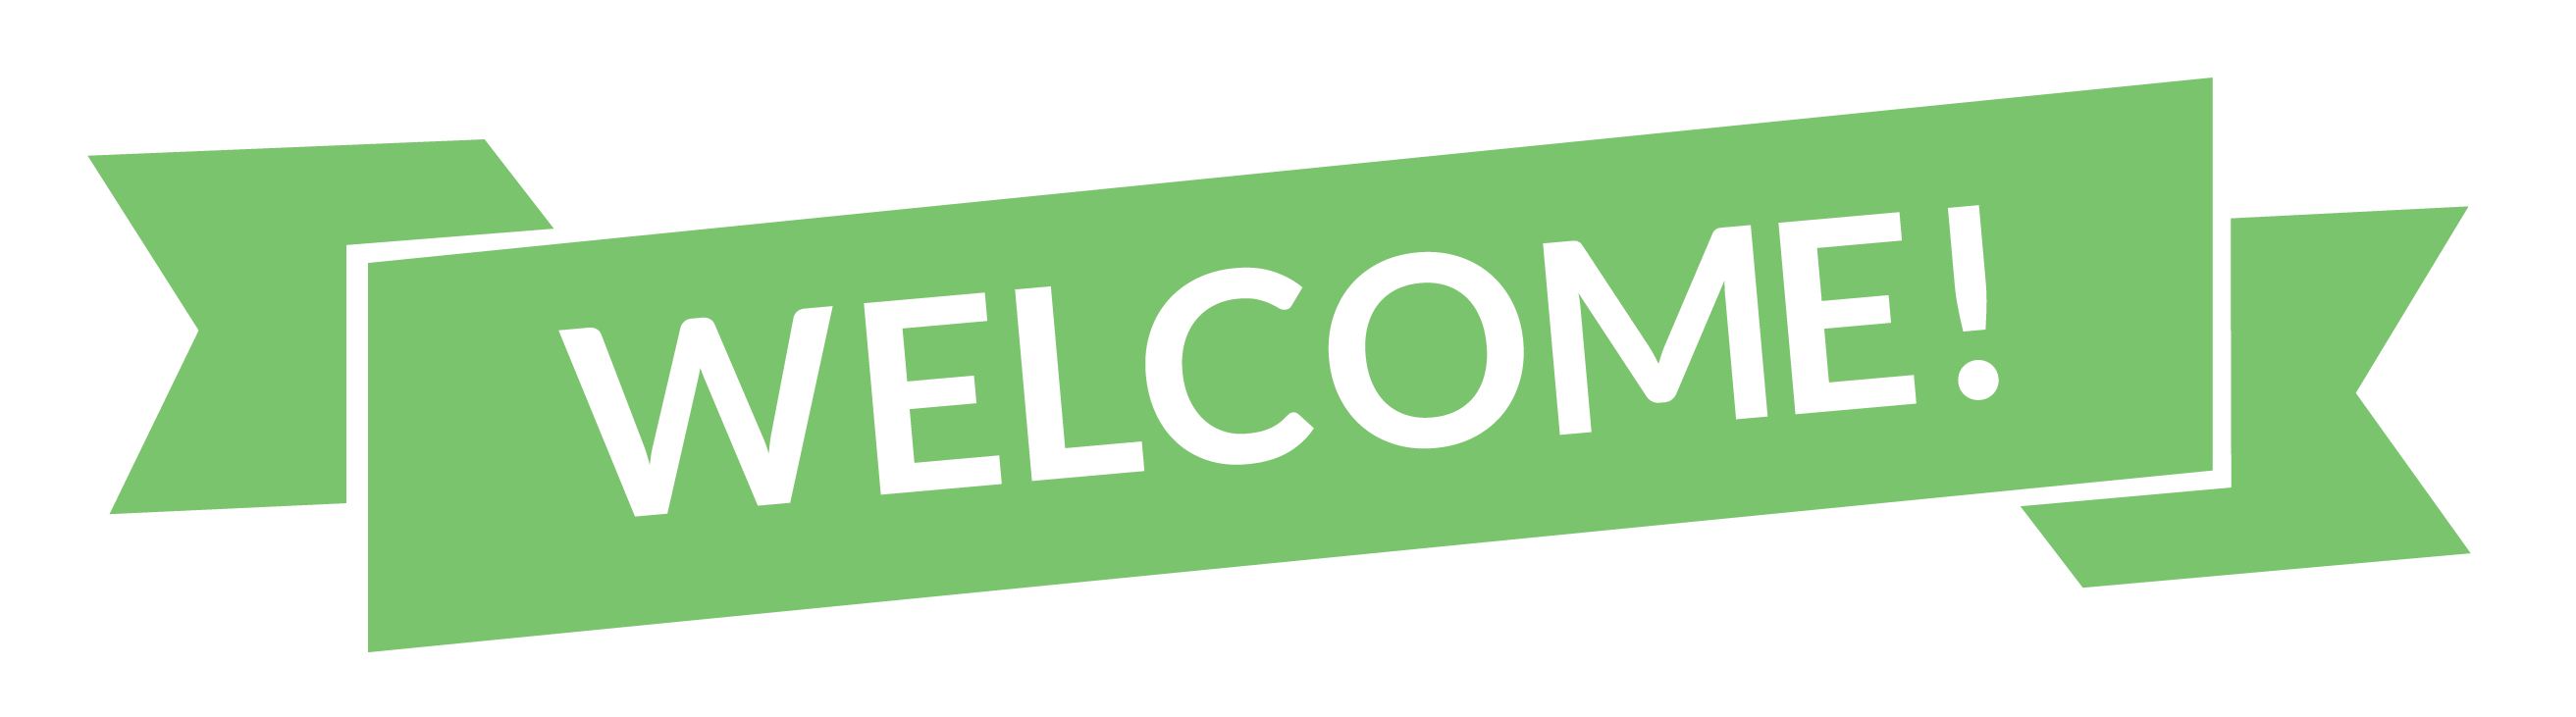 Welcome banner png. Green transparent stickpng download